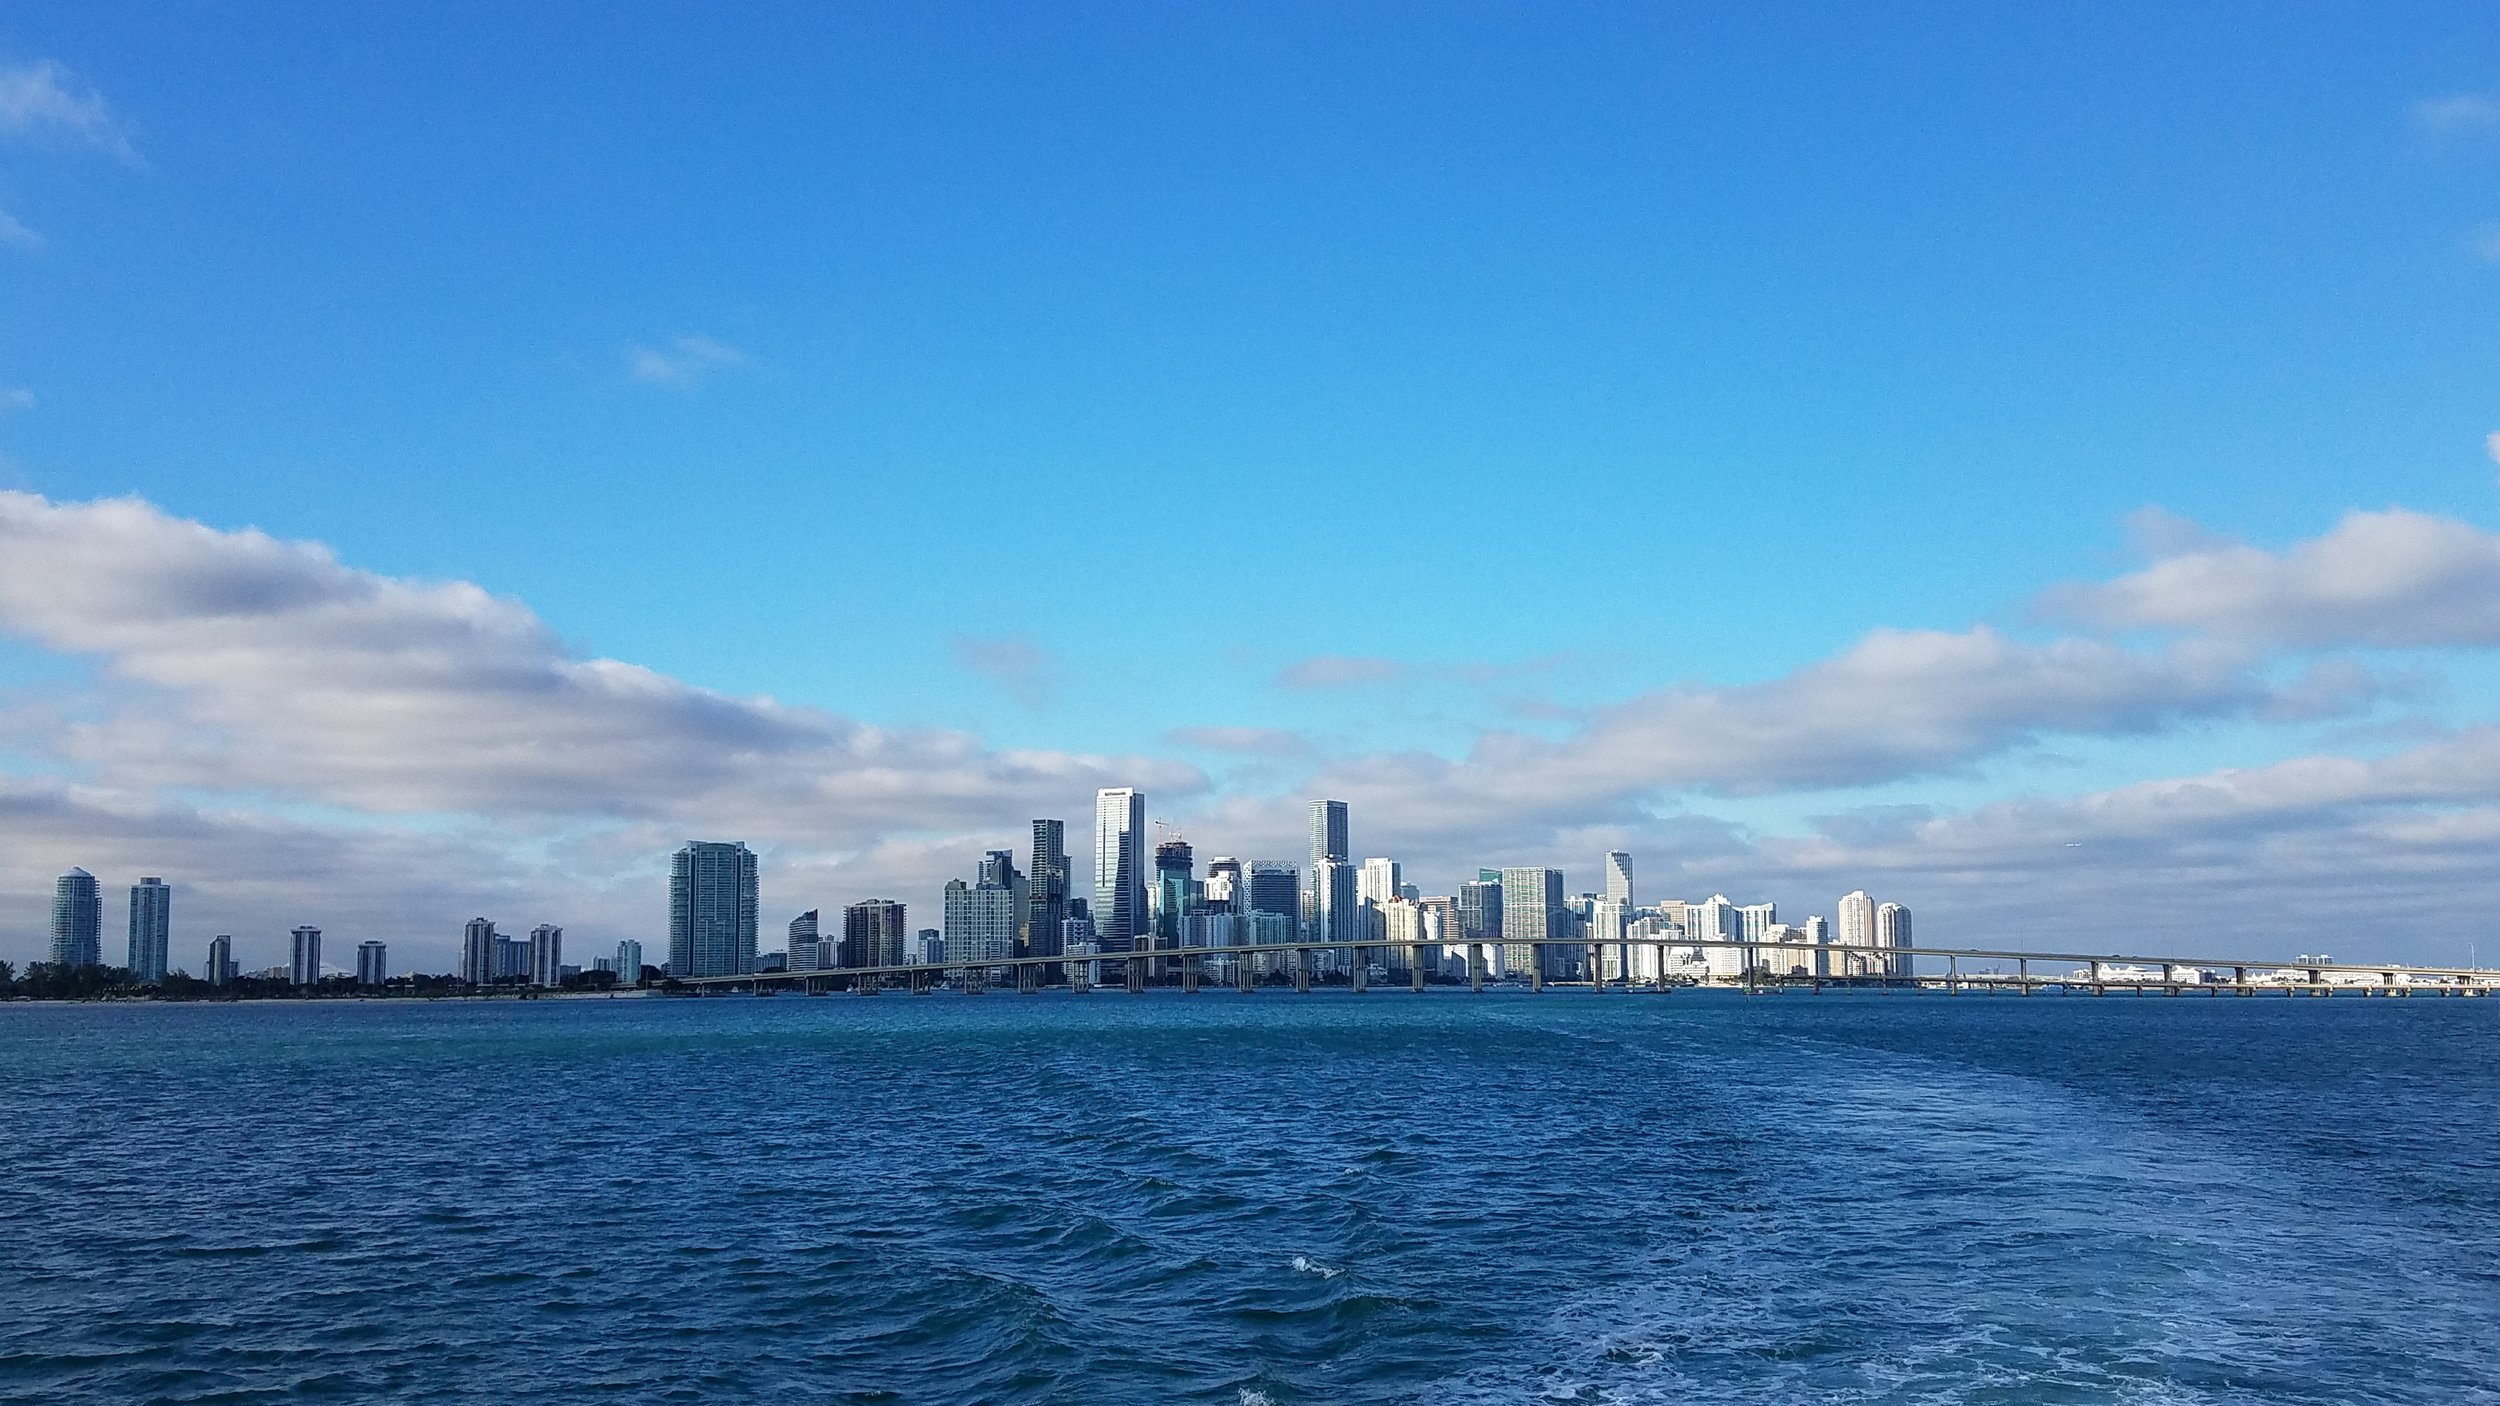 Miami sky line in the distance as we enter Biscayne Bay